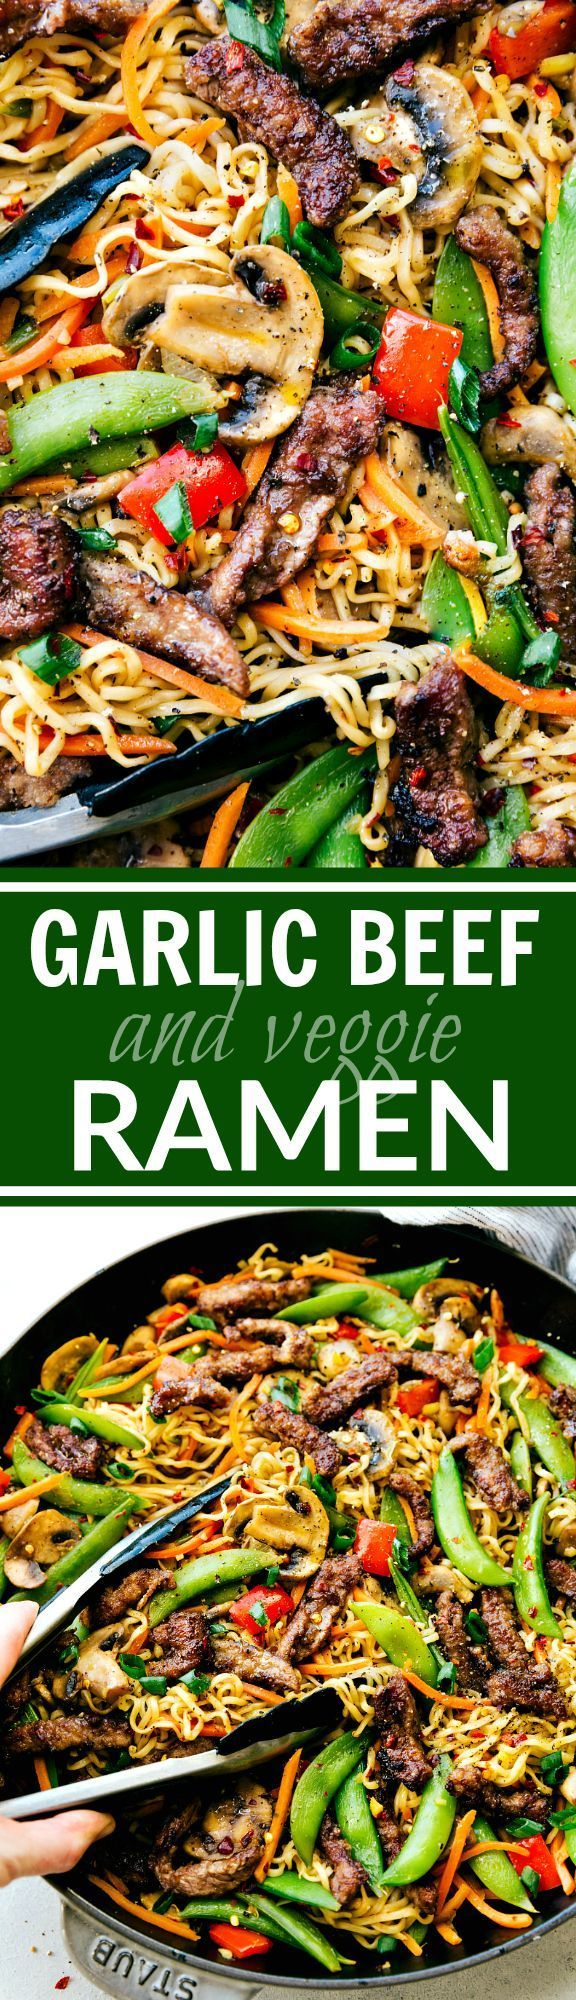 Garlic Beef and Veggie Ramen is an easy 30-minute dinner recipe that is so much better than take-out! via chelseasmessyapron.com (marinated garlic mushrooms)